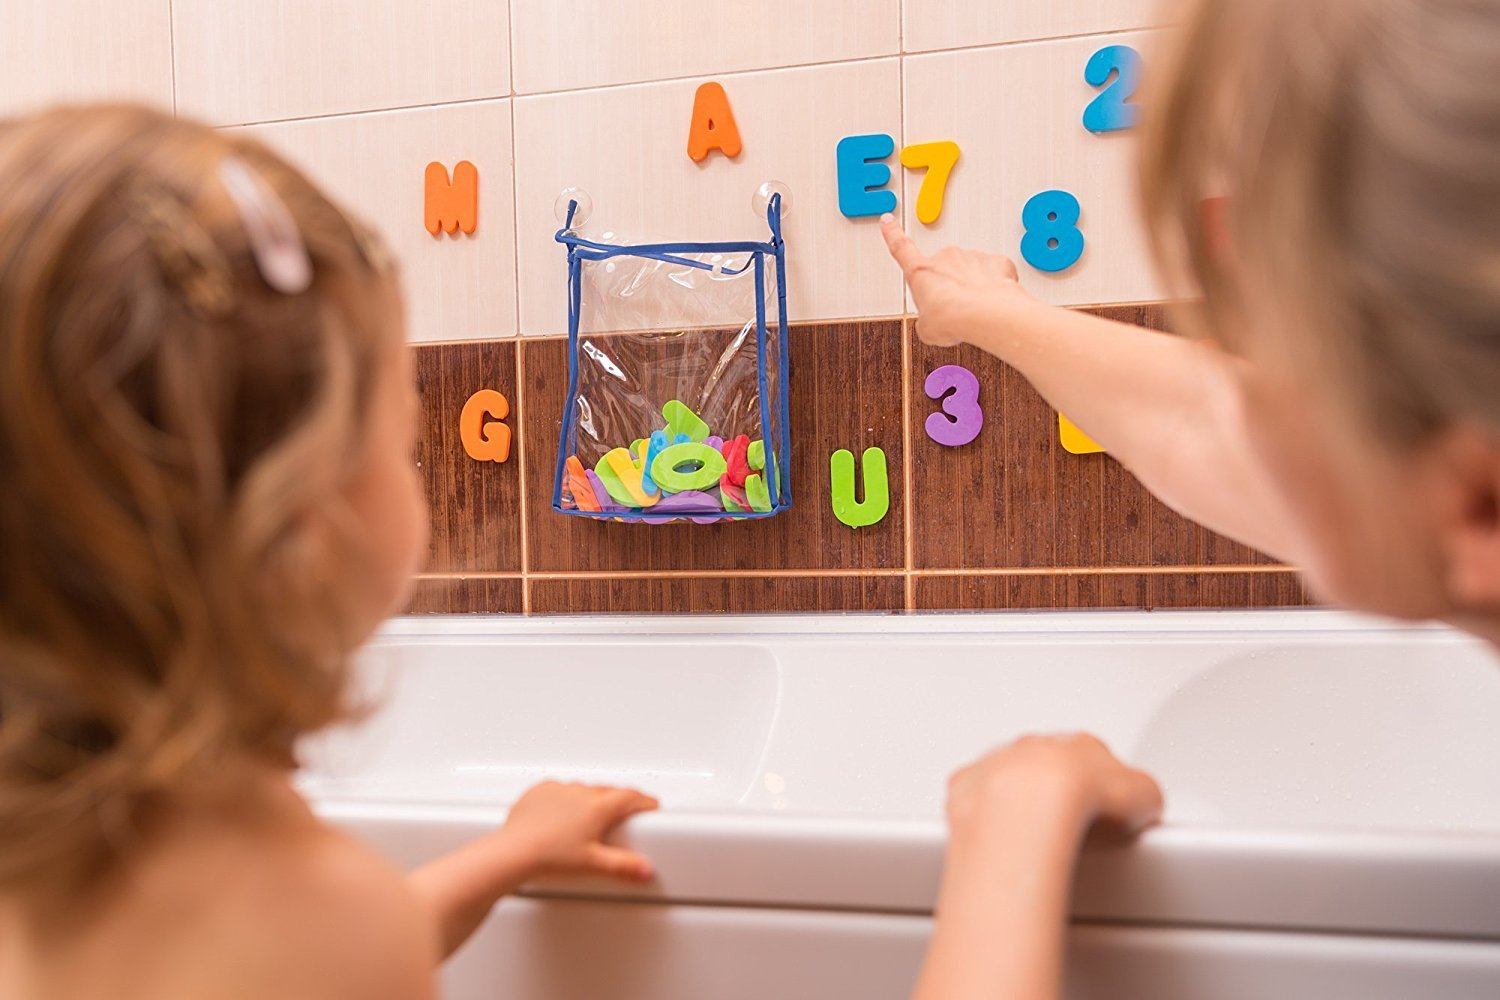 gufolino Baby Bath Toys - 36 Foam Letters and Numbers + Bathtub Toys Organizer and Inflatable Waterproof Book for Toddlers (Multicolor) by gufolino (Image #5)